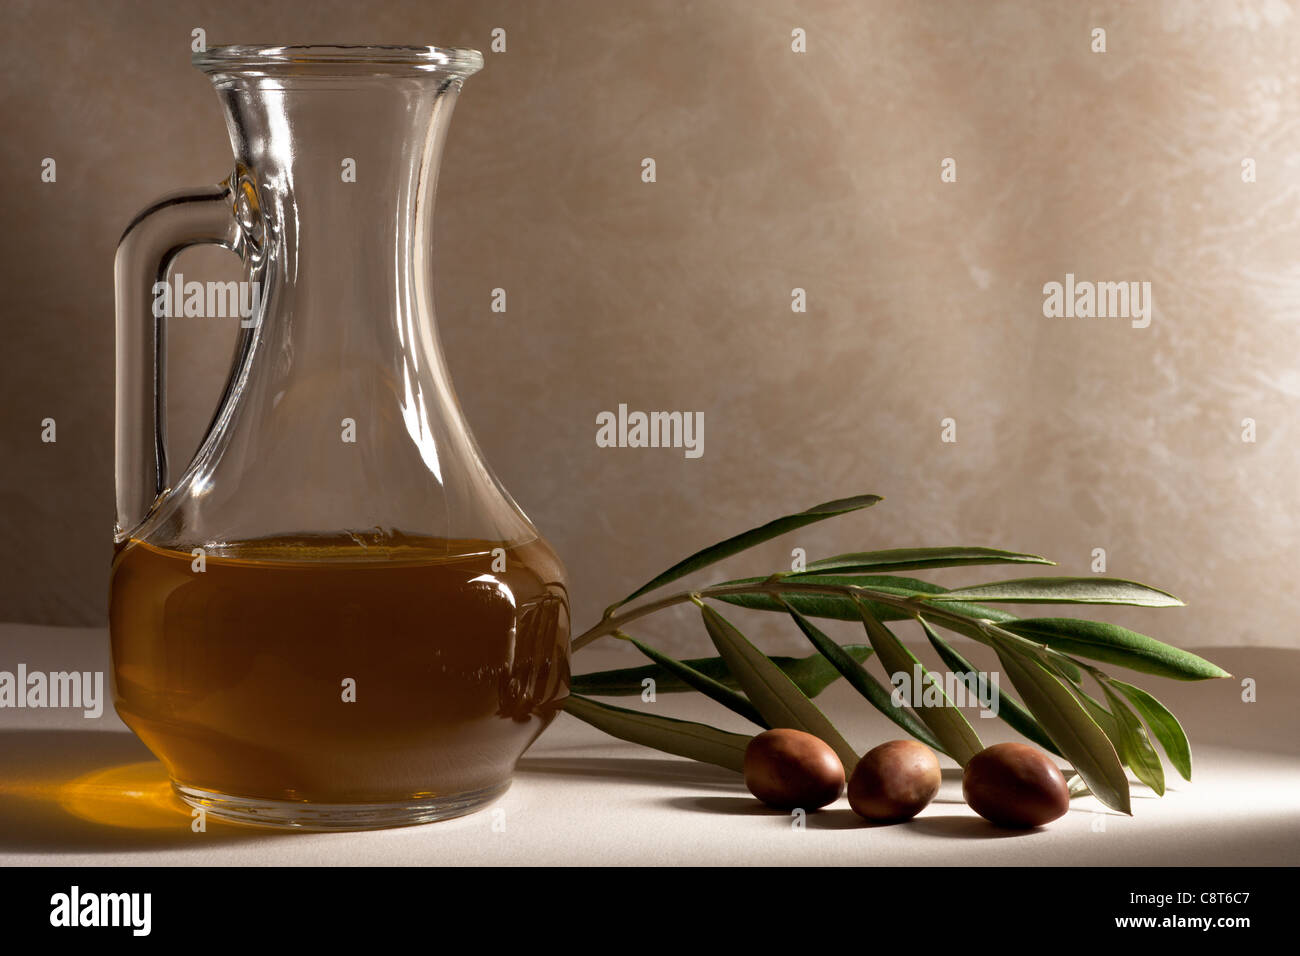 Oil Cruet with Olives and Branch - Stock Image